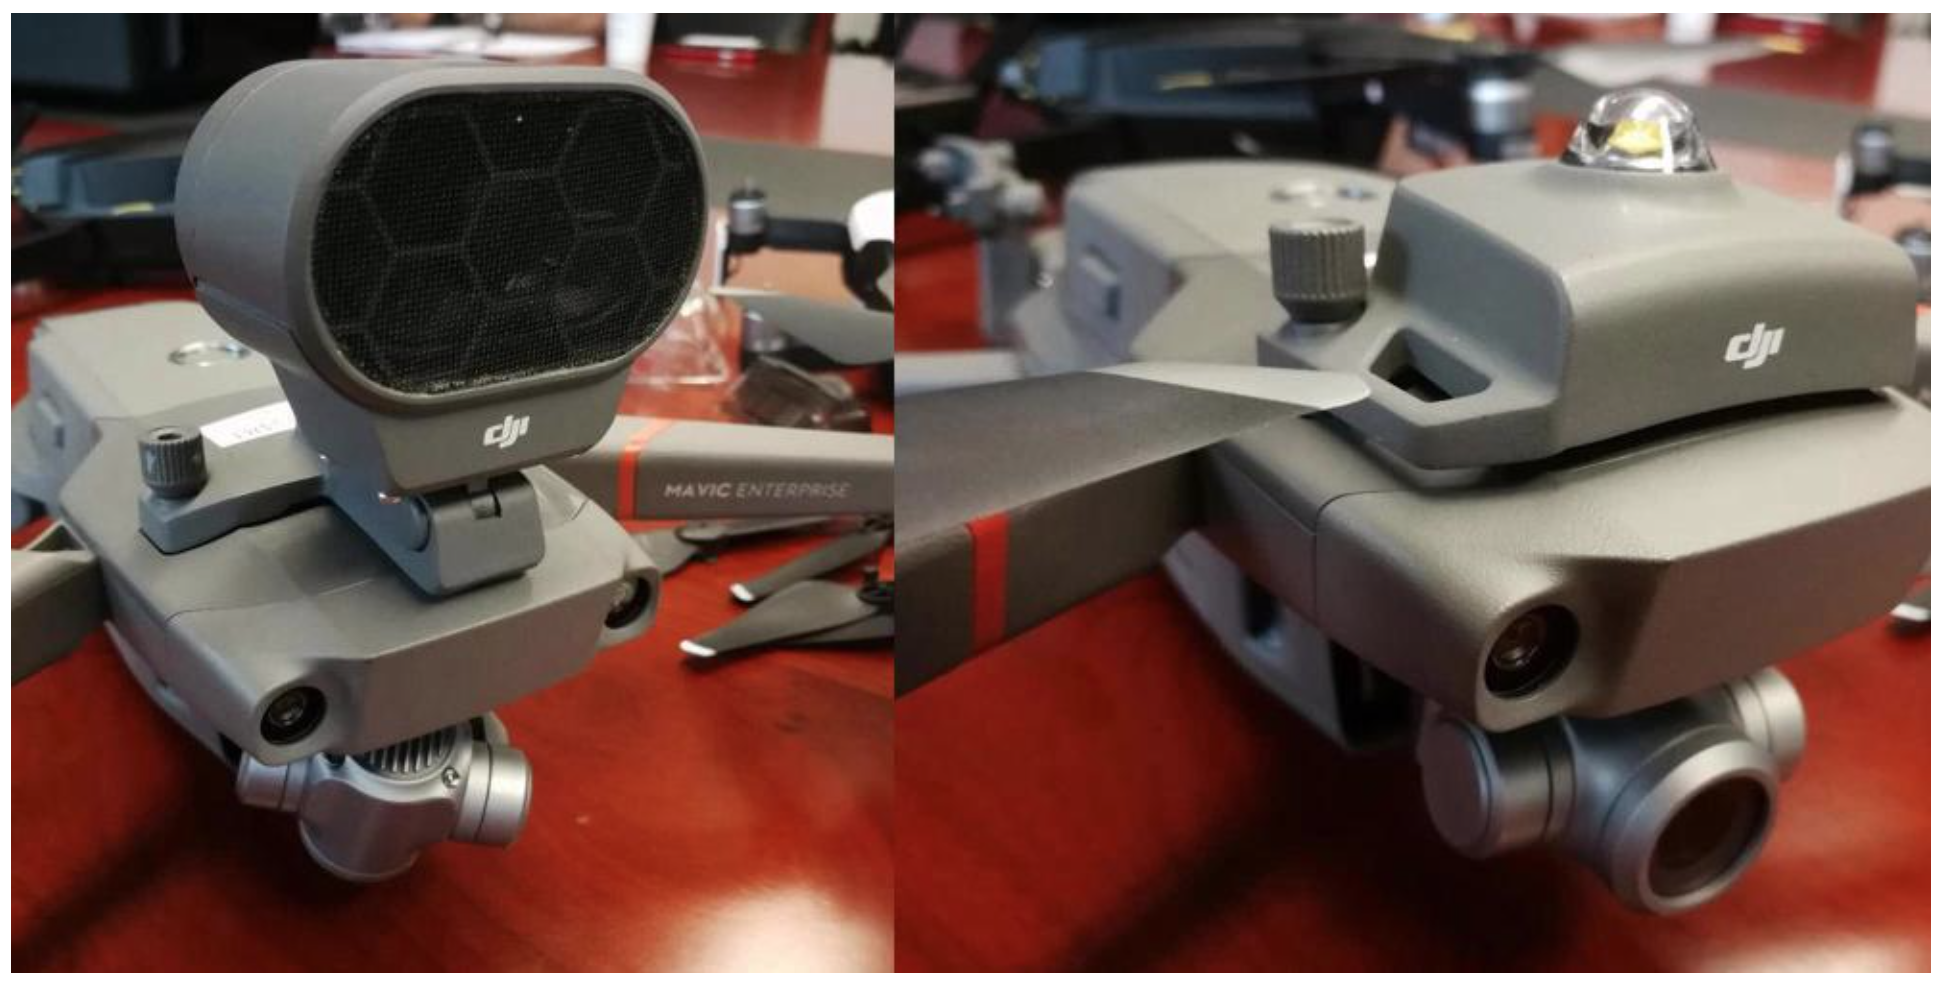 DJI Mavic 2 Enterprise Edition